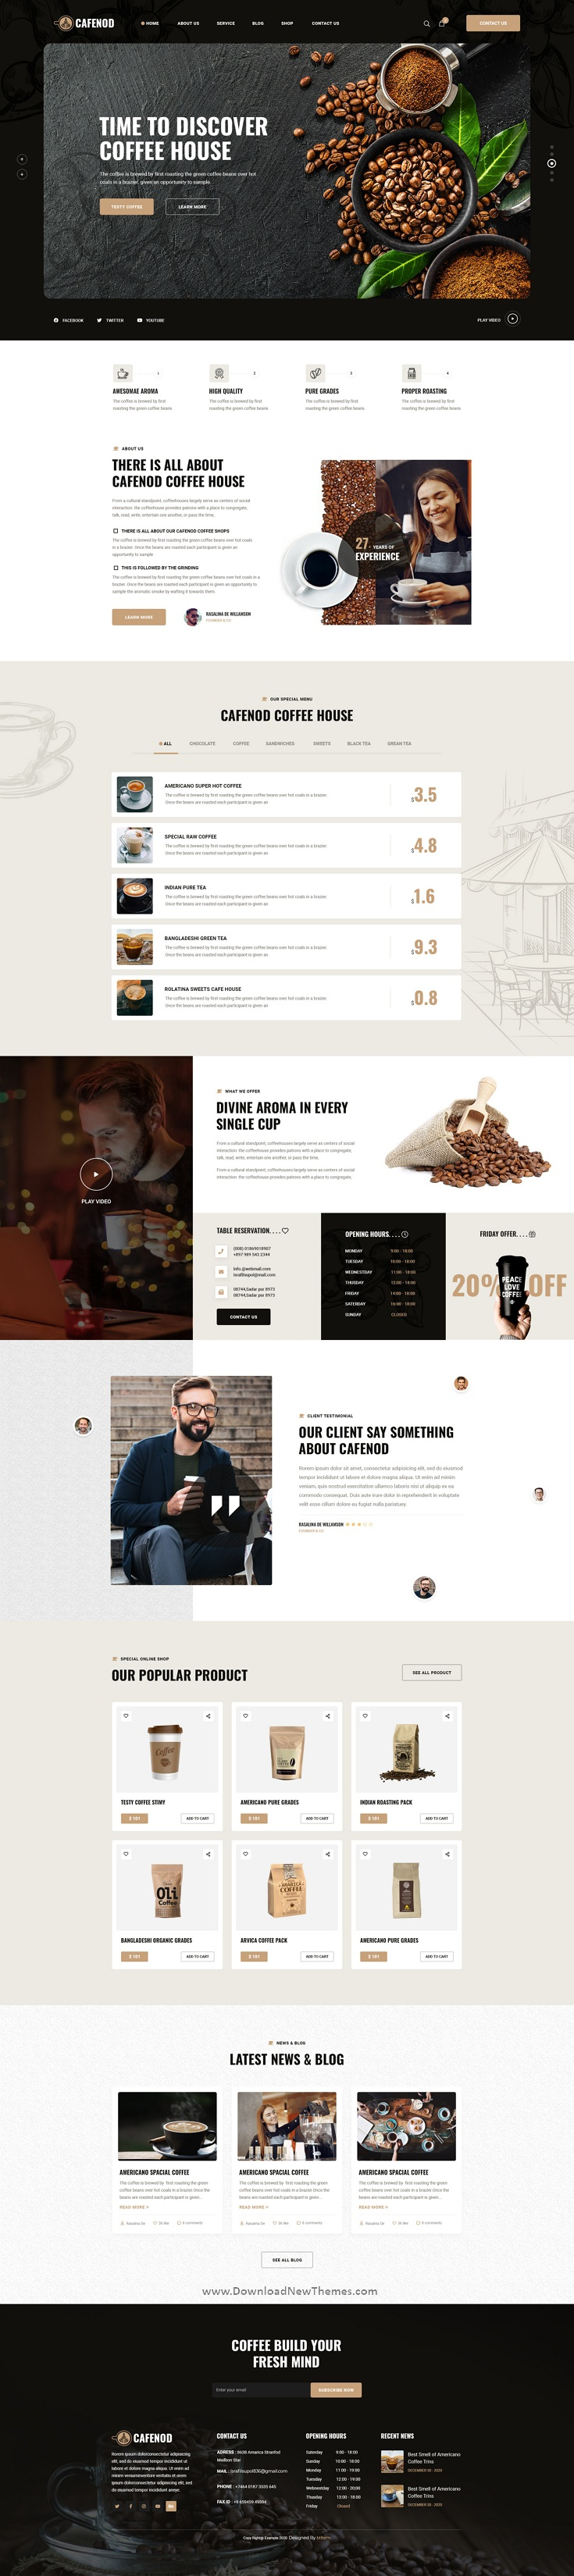 Coffee Shop Photoshop Template